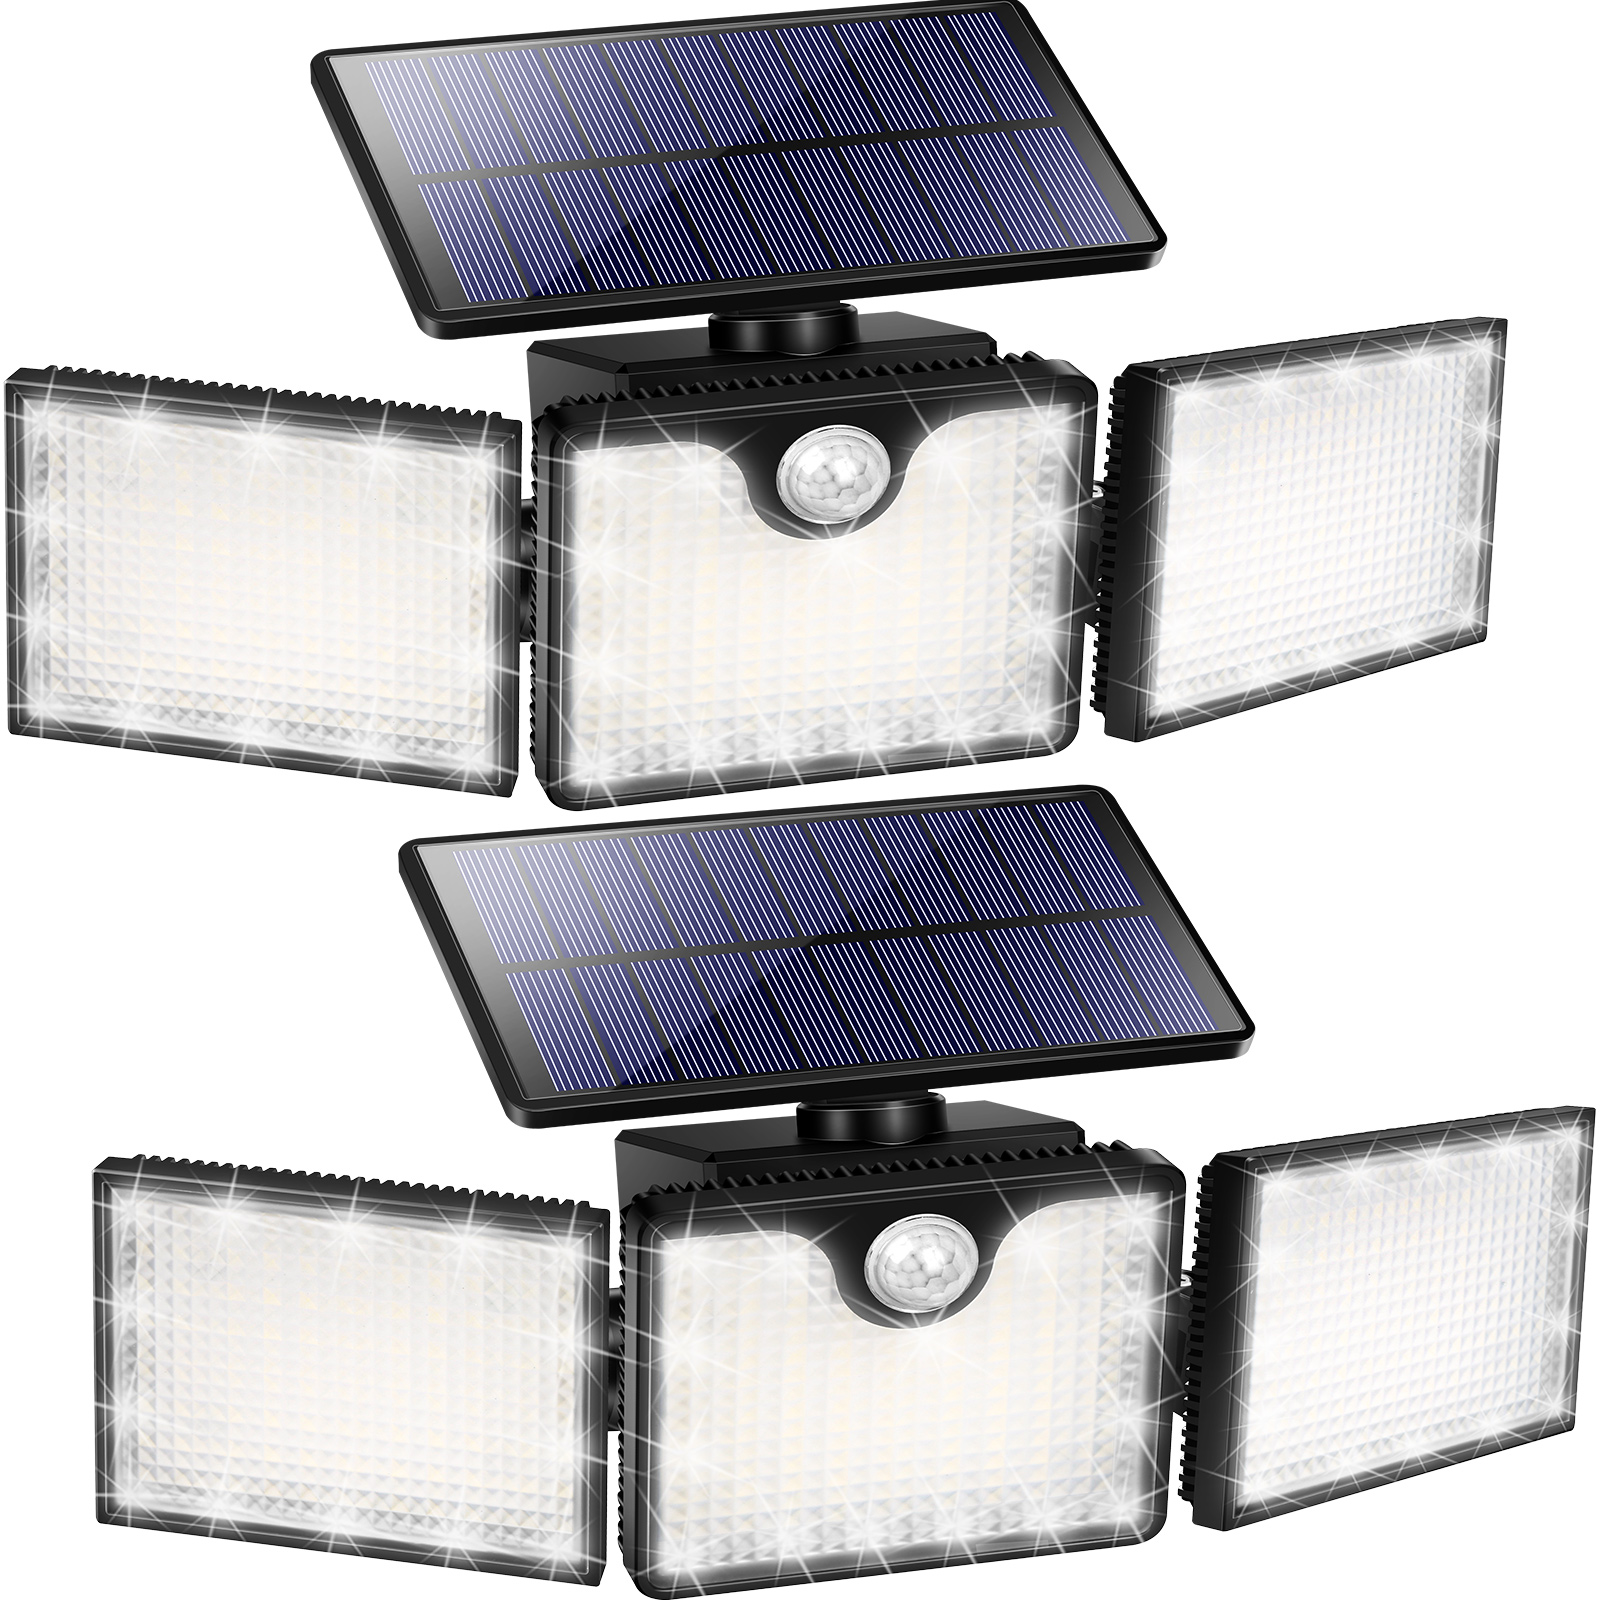 URPOWER Solar Flood Lights Outdoor, 226 LED 3 Heads Adjustable Solar Motion Sensor Lights, 270° Wide Angle Solar Powered Security Lights (2 Pack)